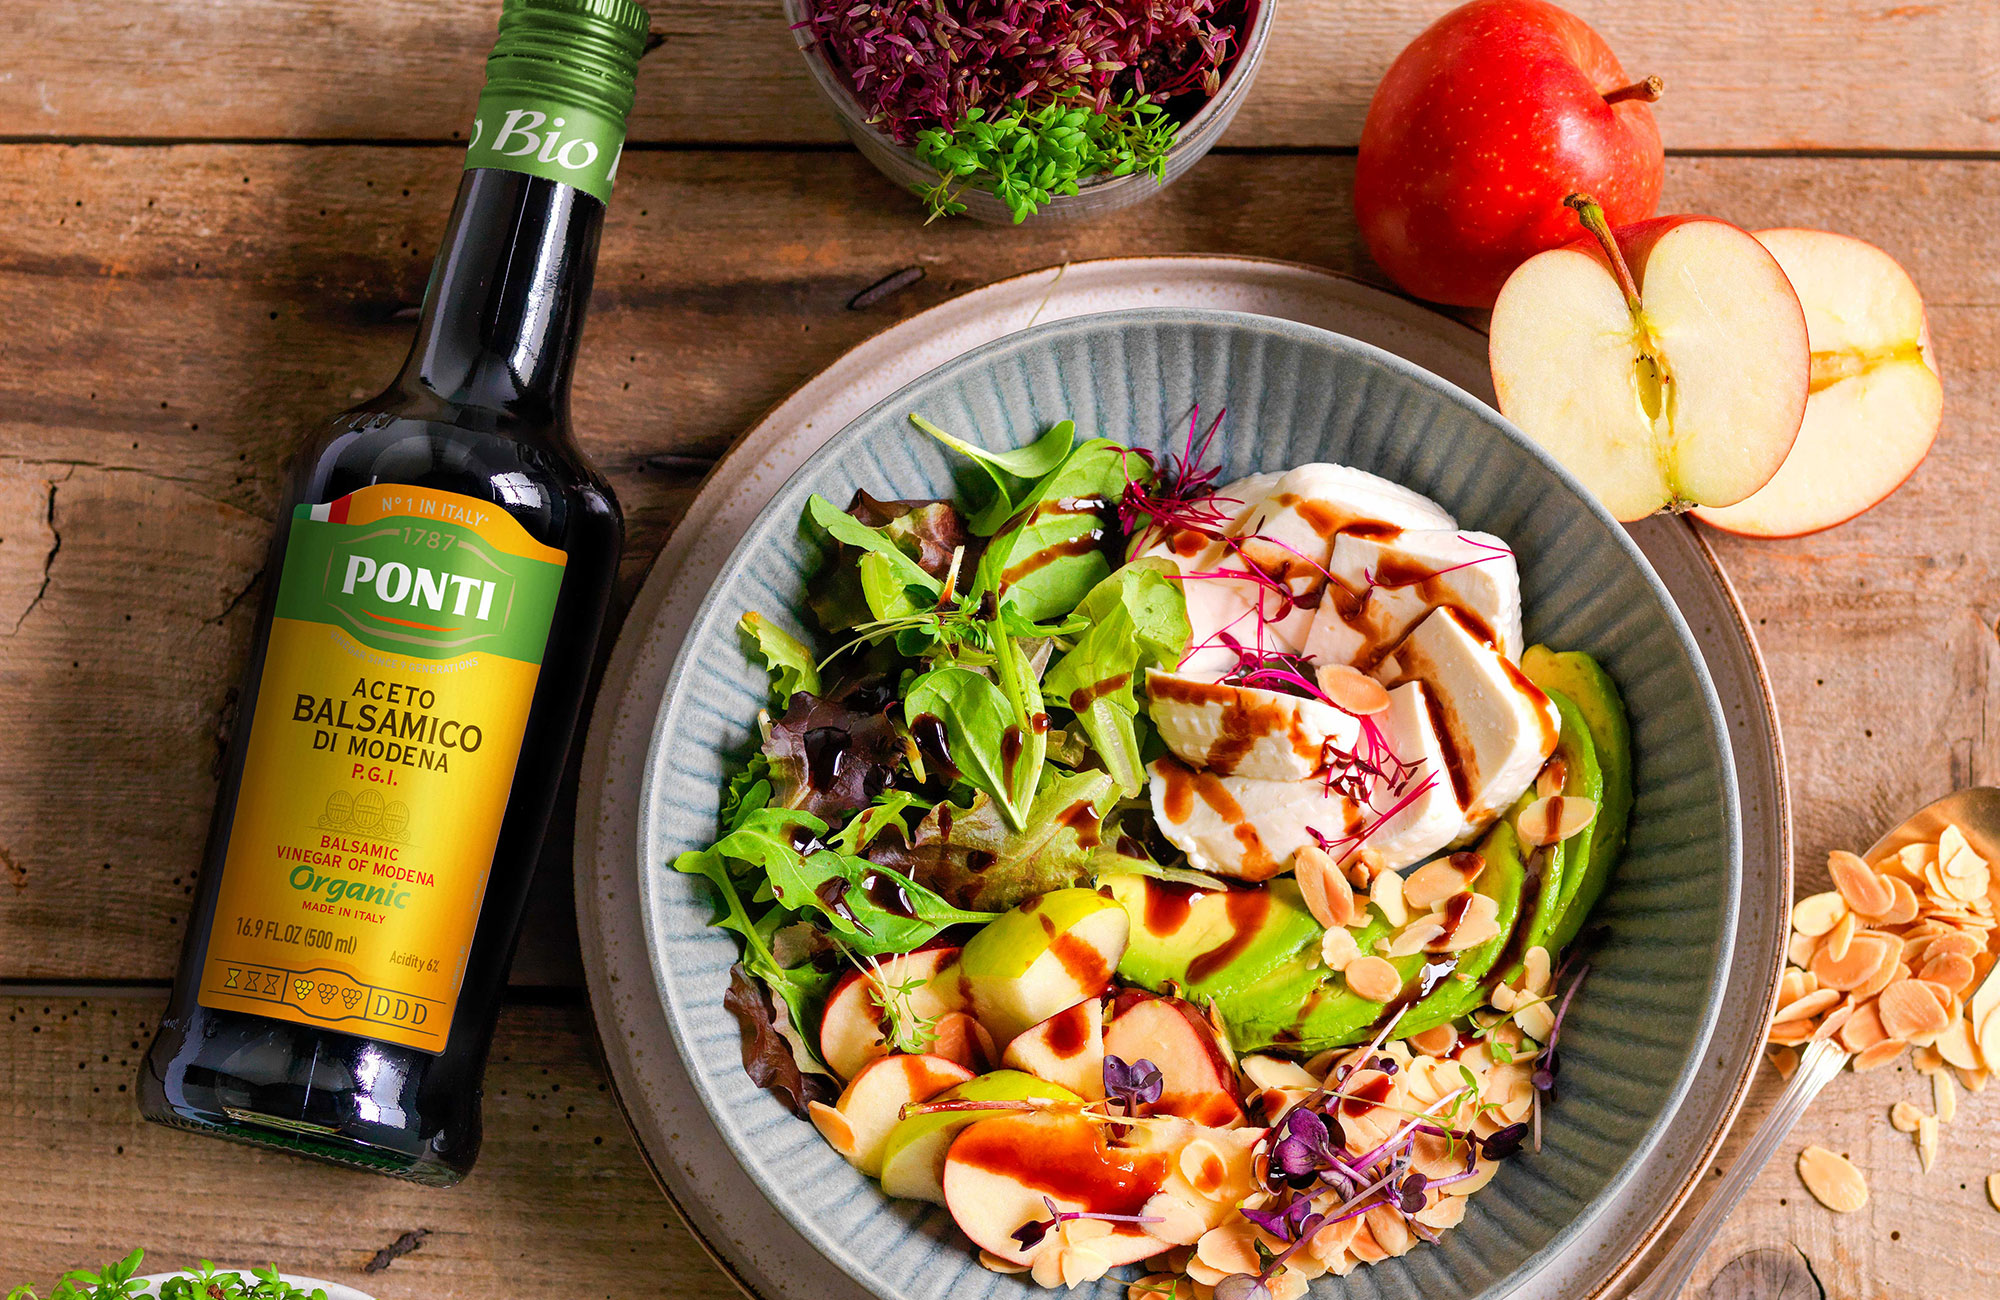 Mixed salad with avocado, Asiago P.D.O. and garnished with Ponti Organic Balsamic Vinegar of Modena P.G.I - Ponti